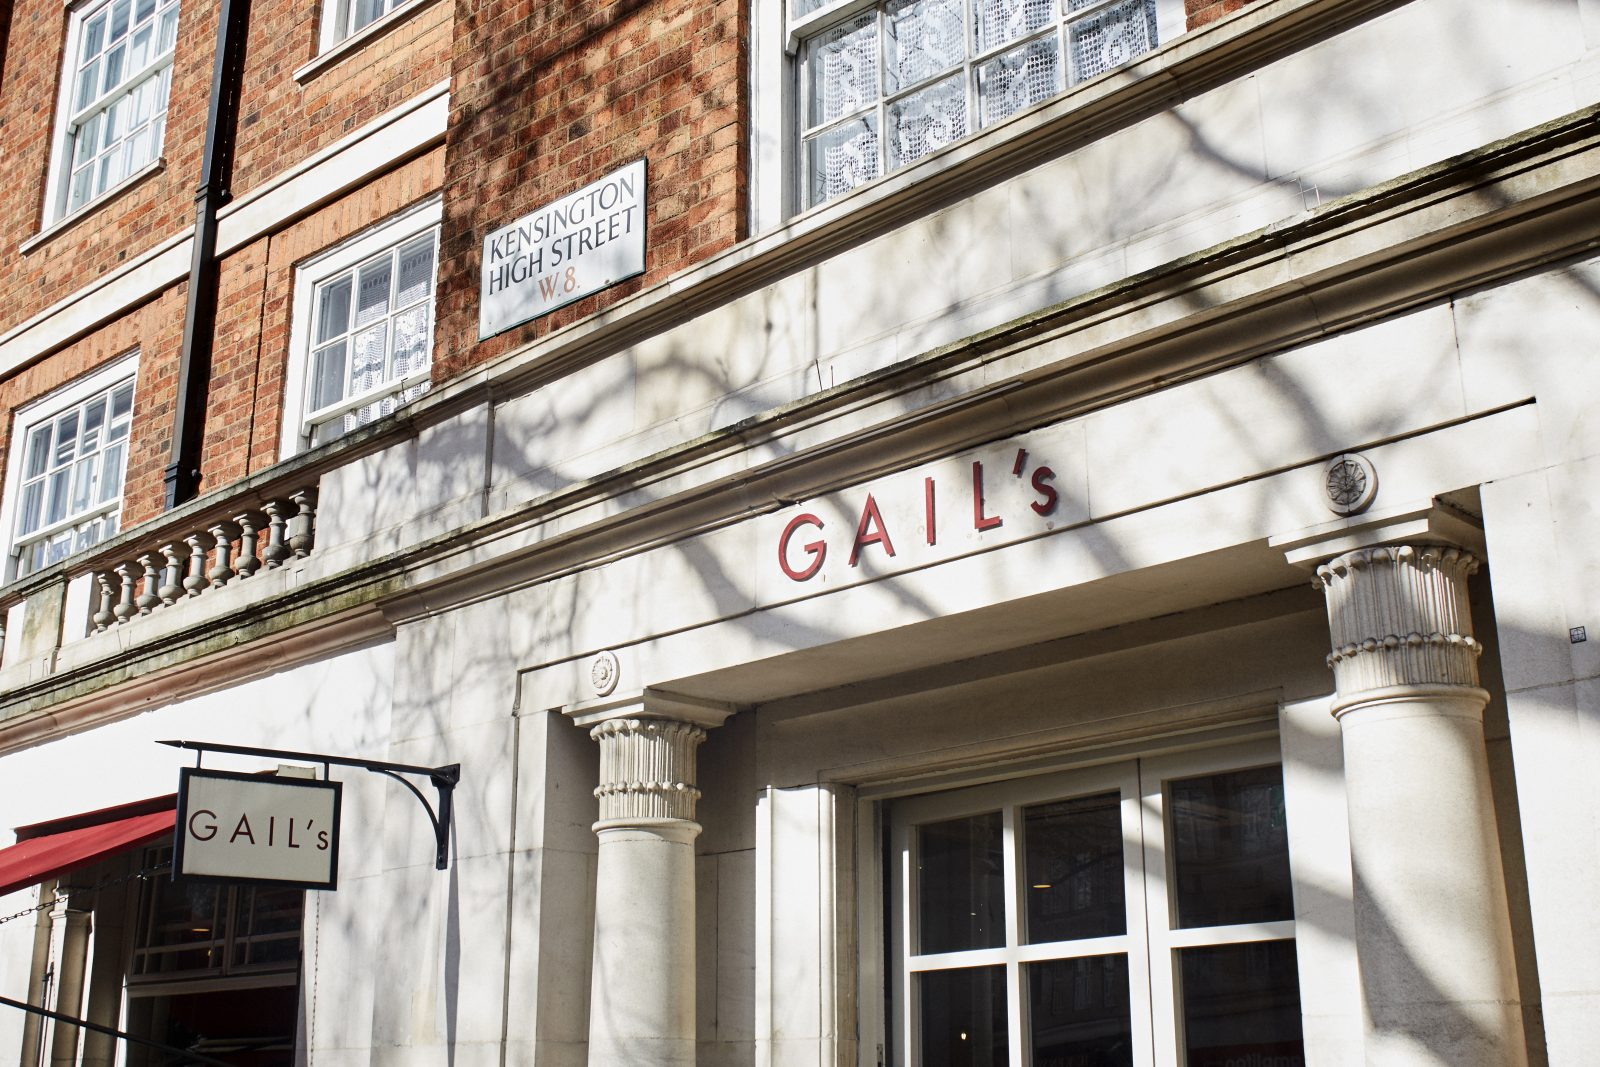 Tunsgate Quarter Welcomes Gail's Bakery to Scheme